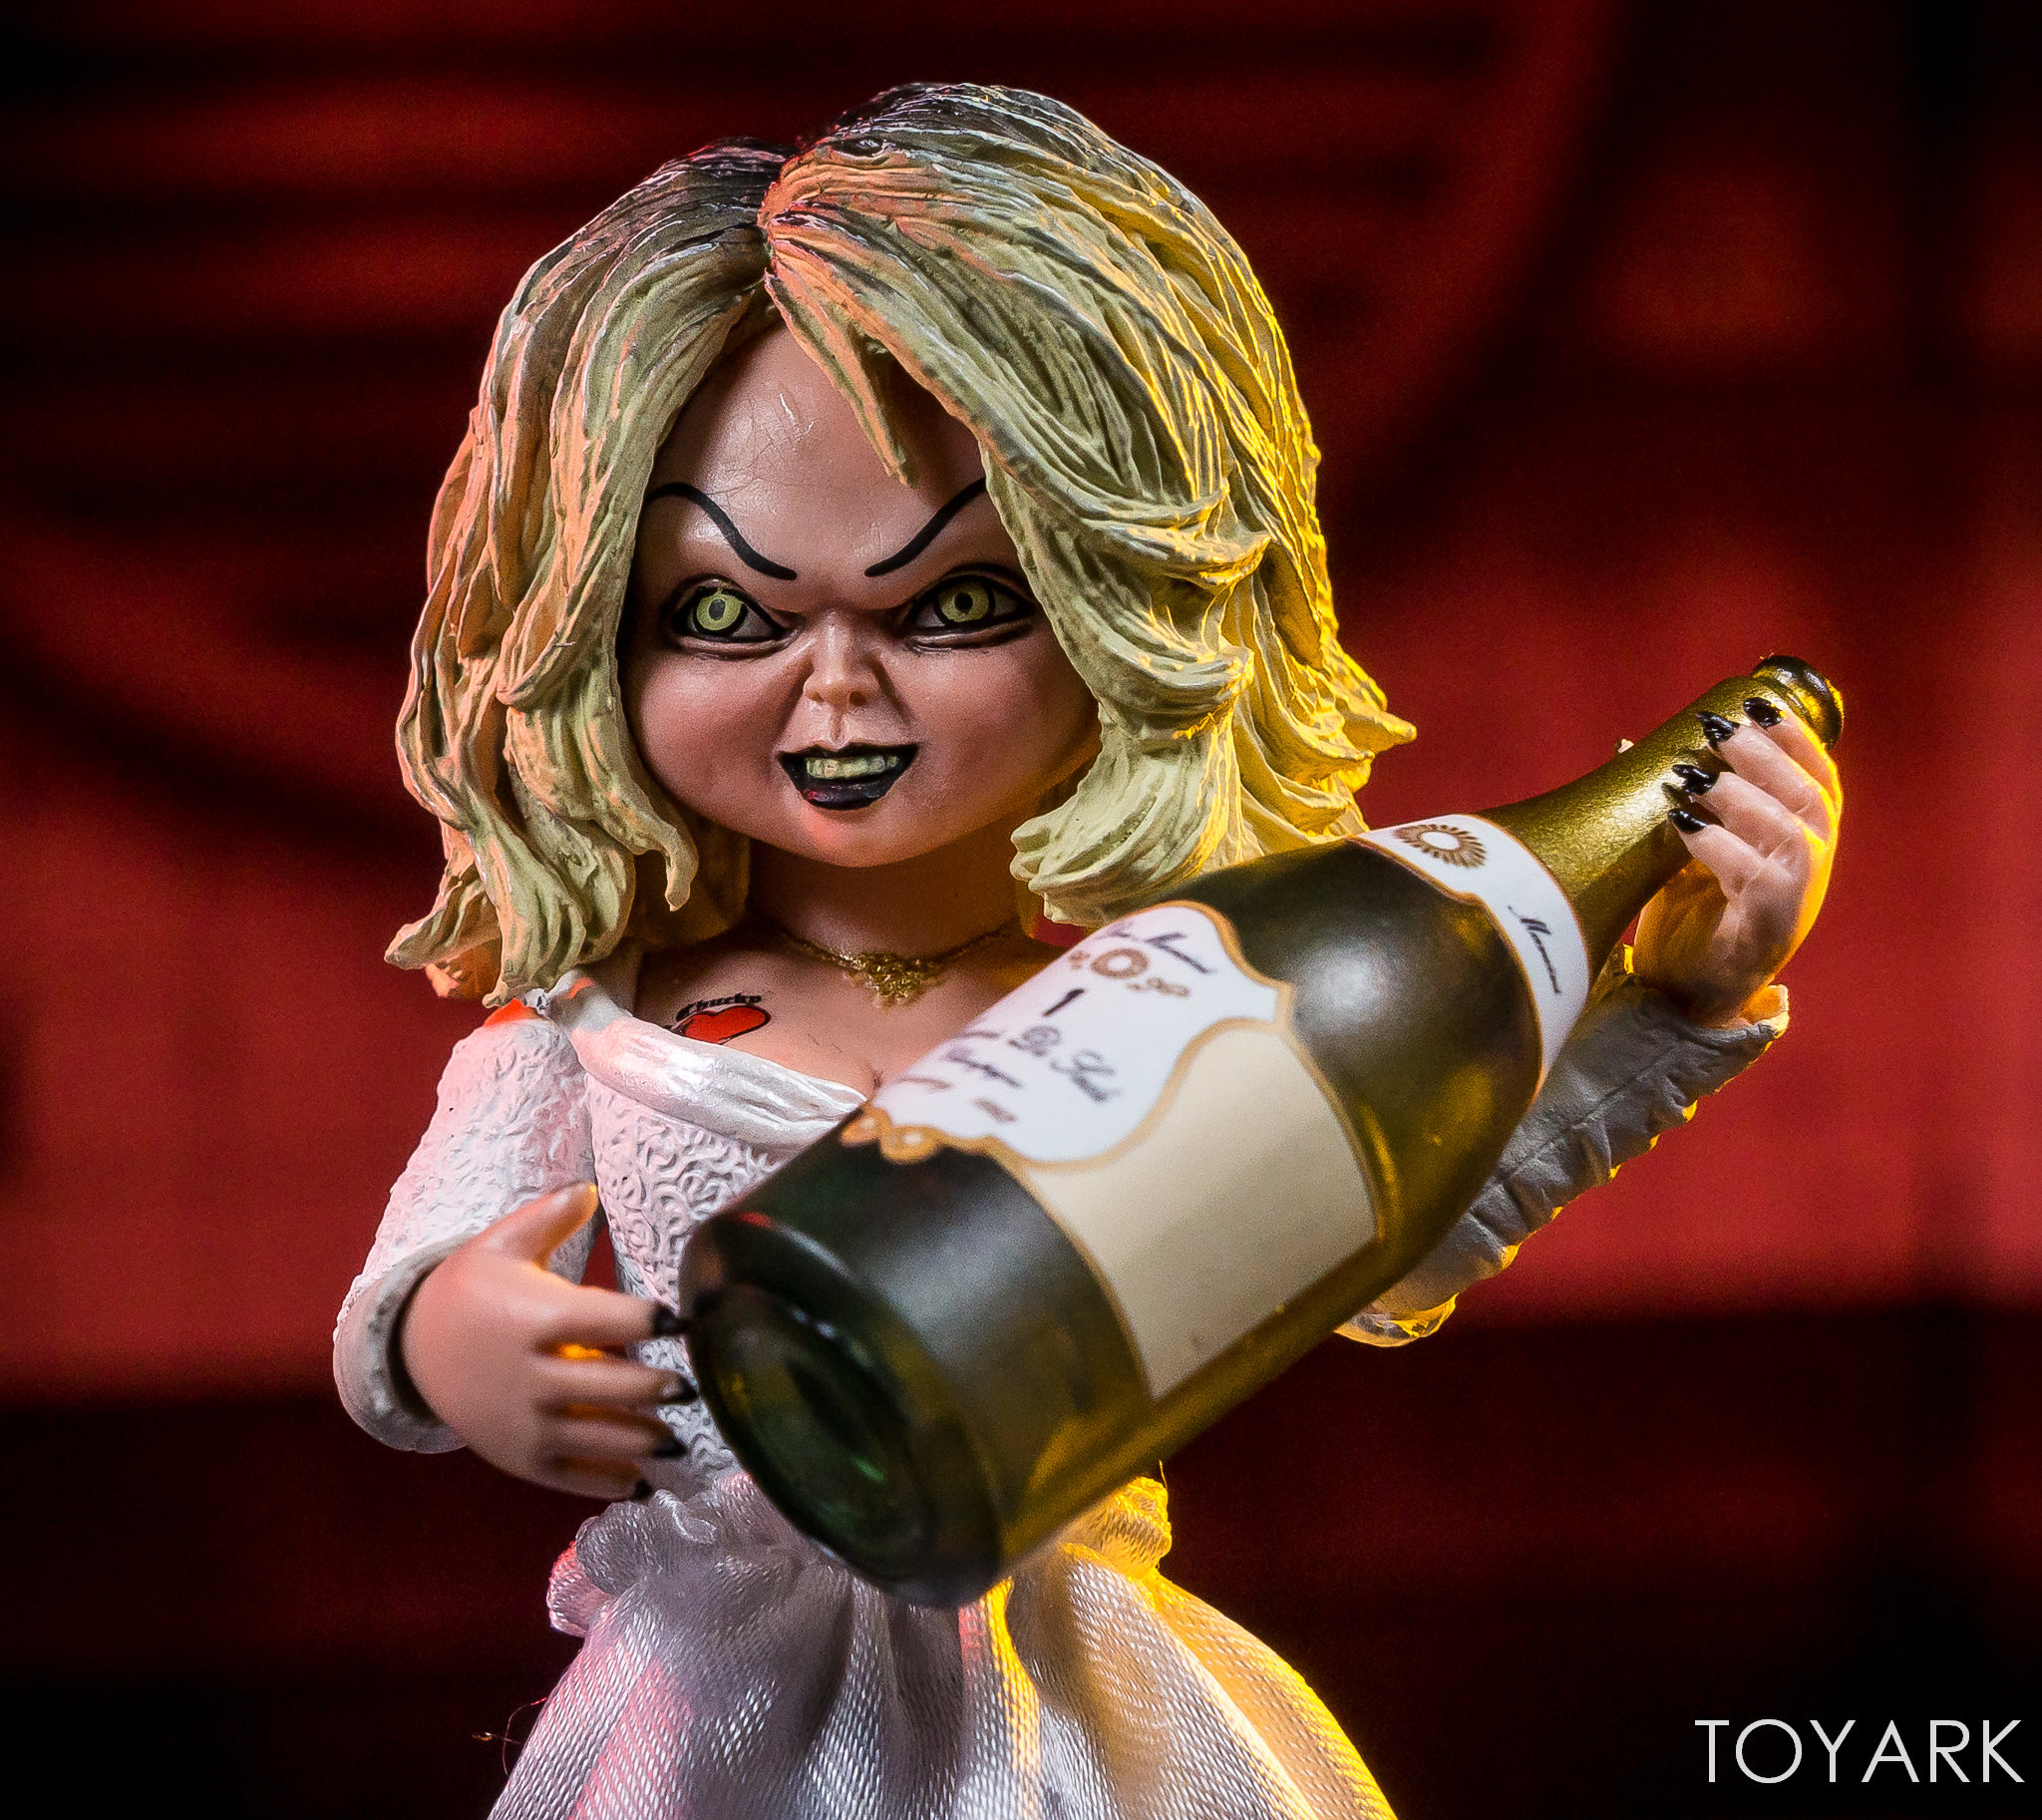 https://news.toyark.com/wp-content/uploads/sites/4/2019/01/Bride-of-Chucky-NECA-Set-028.jpg